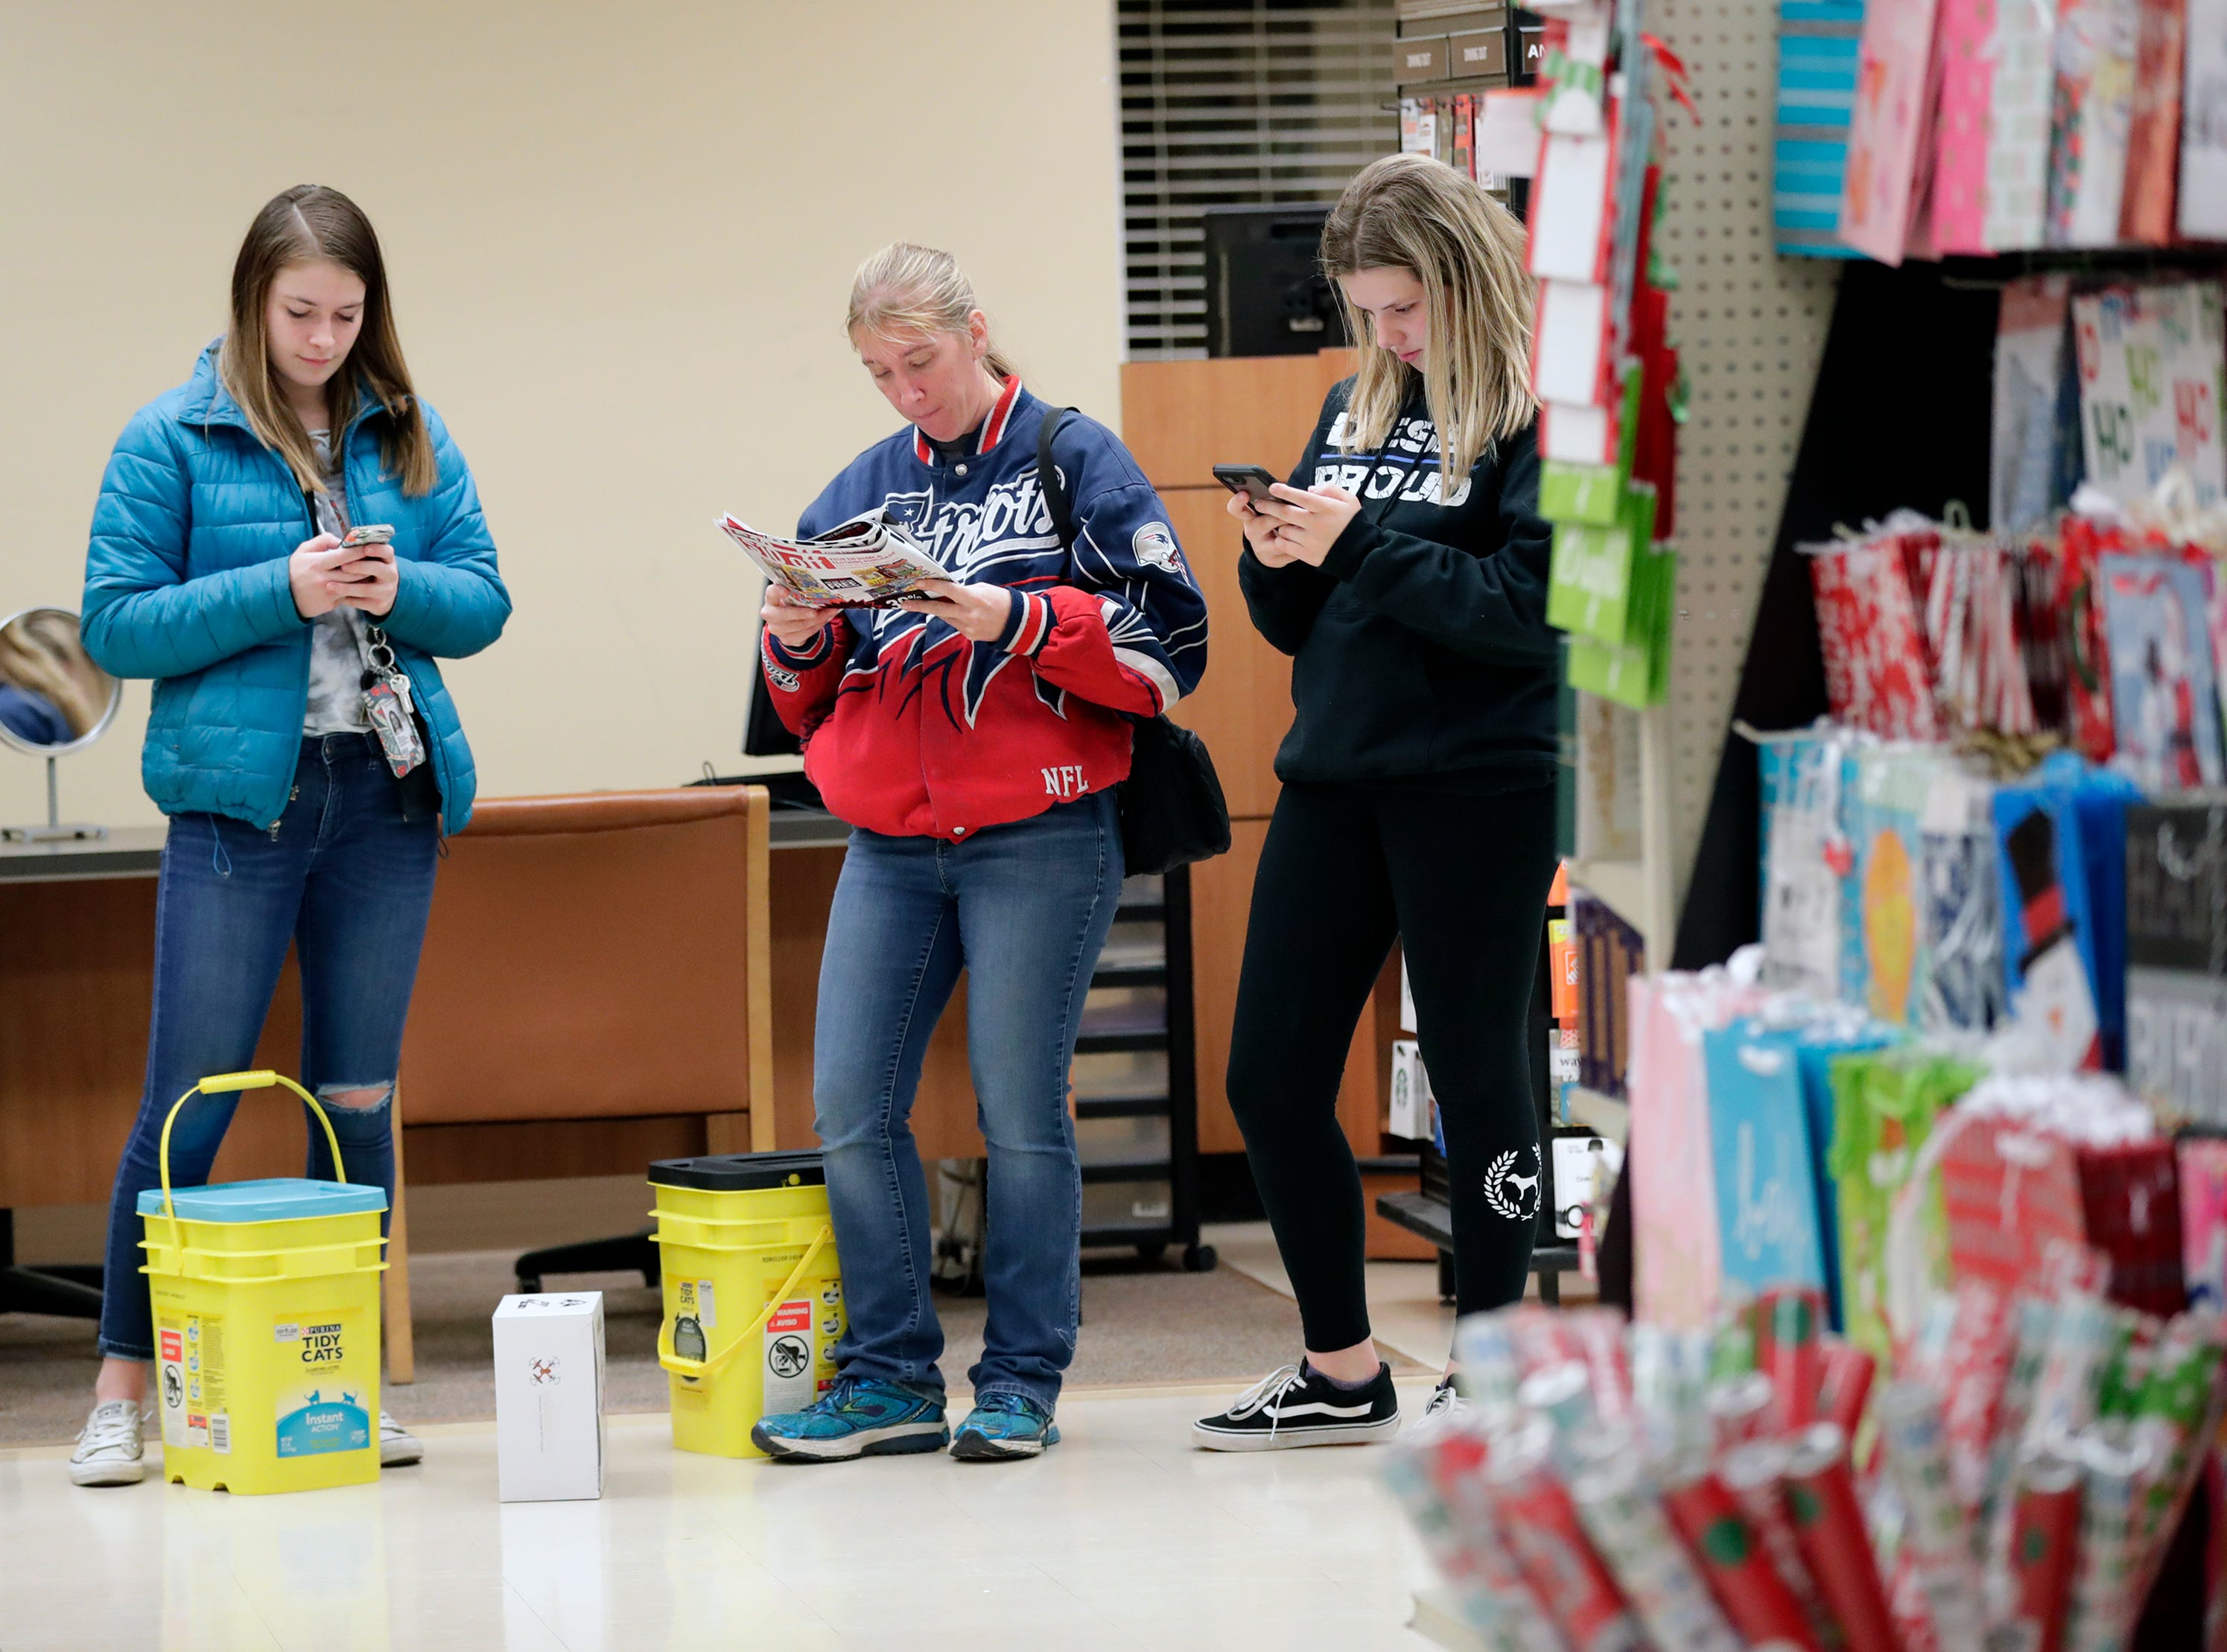 McKinzie Fields, left, Janet Fields and Emily Schertz, right, make a plan of attack for Black Friday specials at Shopko Thursday, November 22, 2018, in Appleton, Wis. The three are from Black Creek.